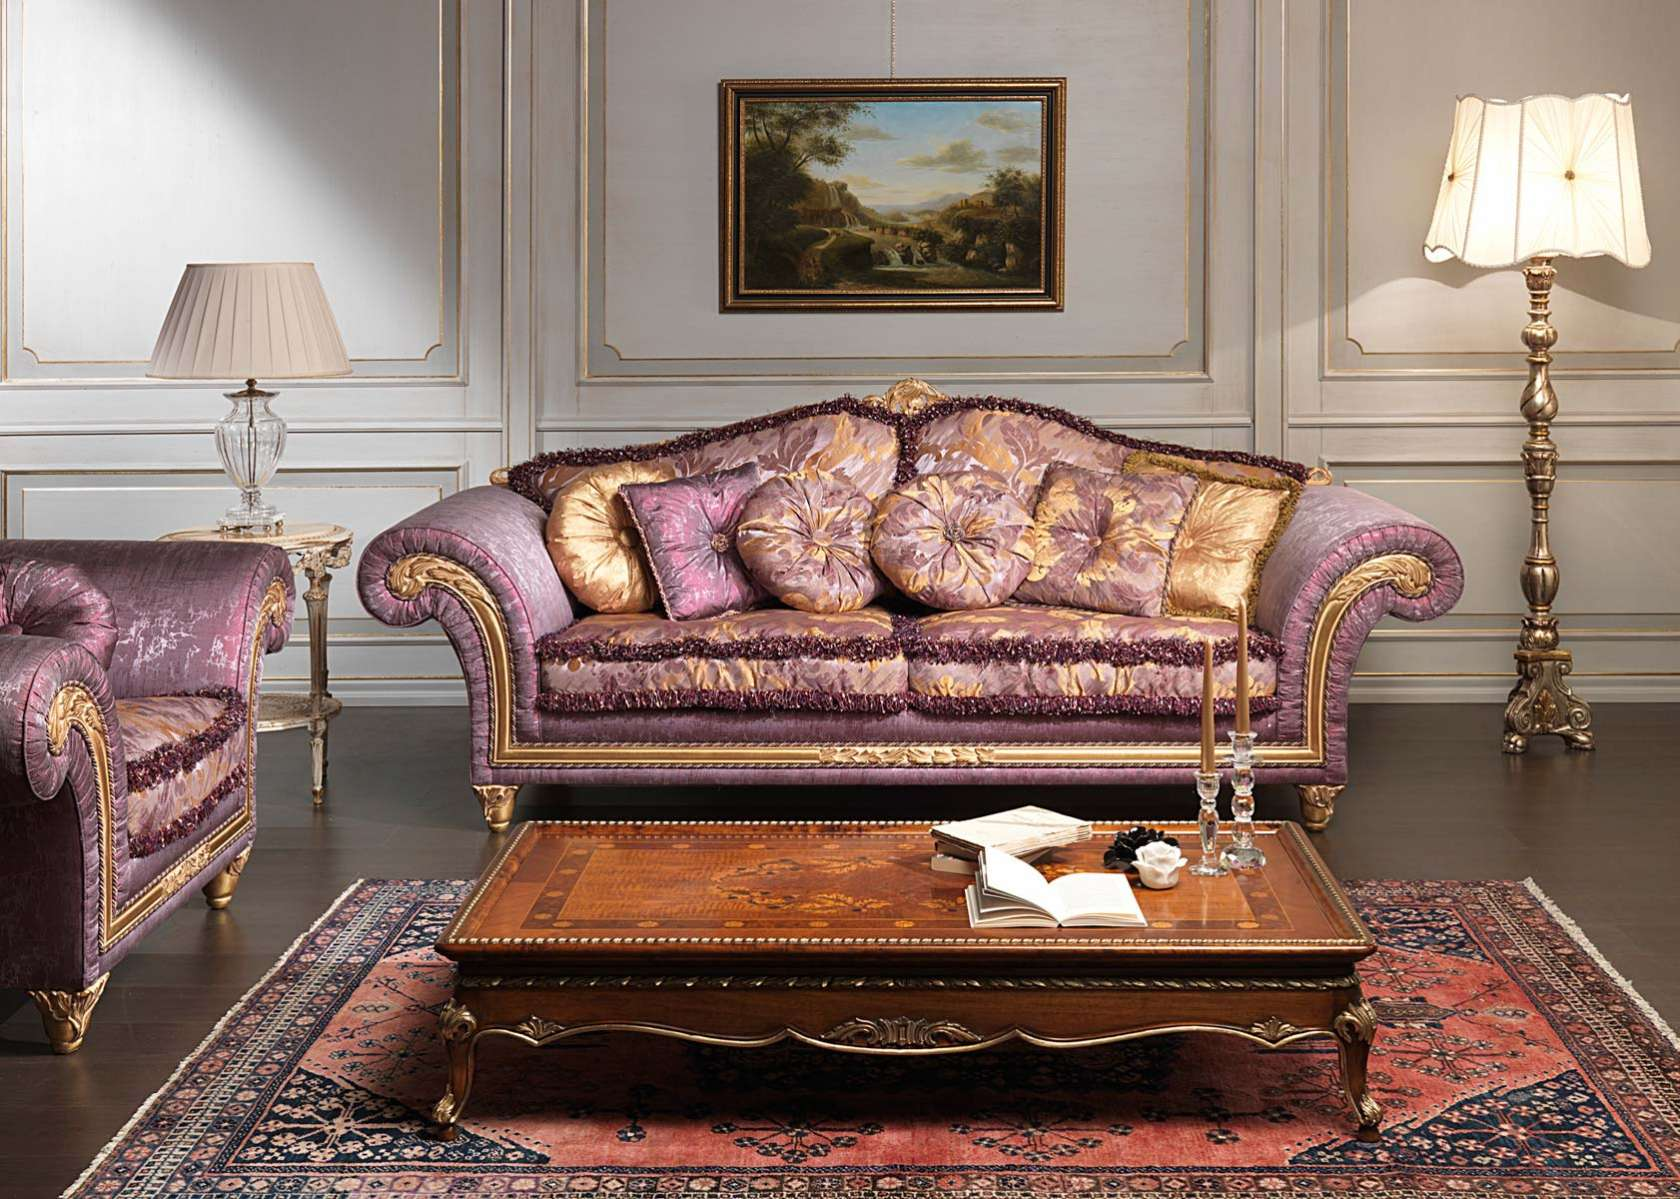 Merveilleux Classic Violet Sofa Imperial And Carved Table